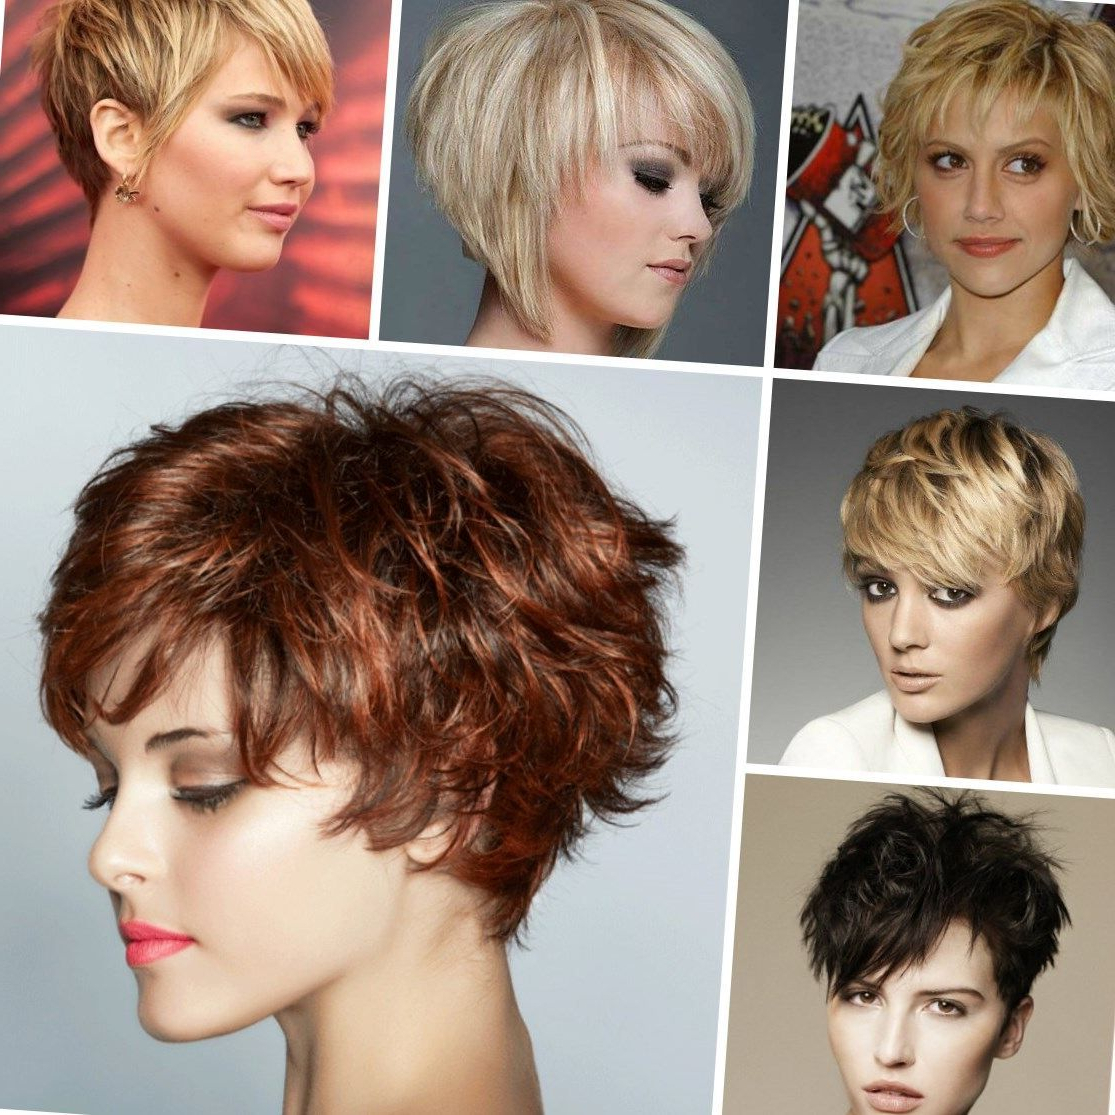 20 Short Sassy Haircuts Short Hairstyles 2017 2018 Most Short With Regard To Most Popular Sassy Medium Haircuts For Thick Hair (View 1 of 20)